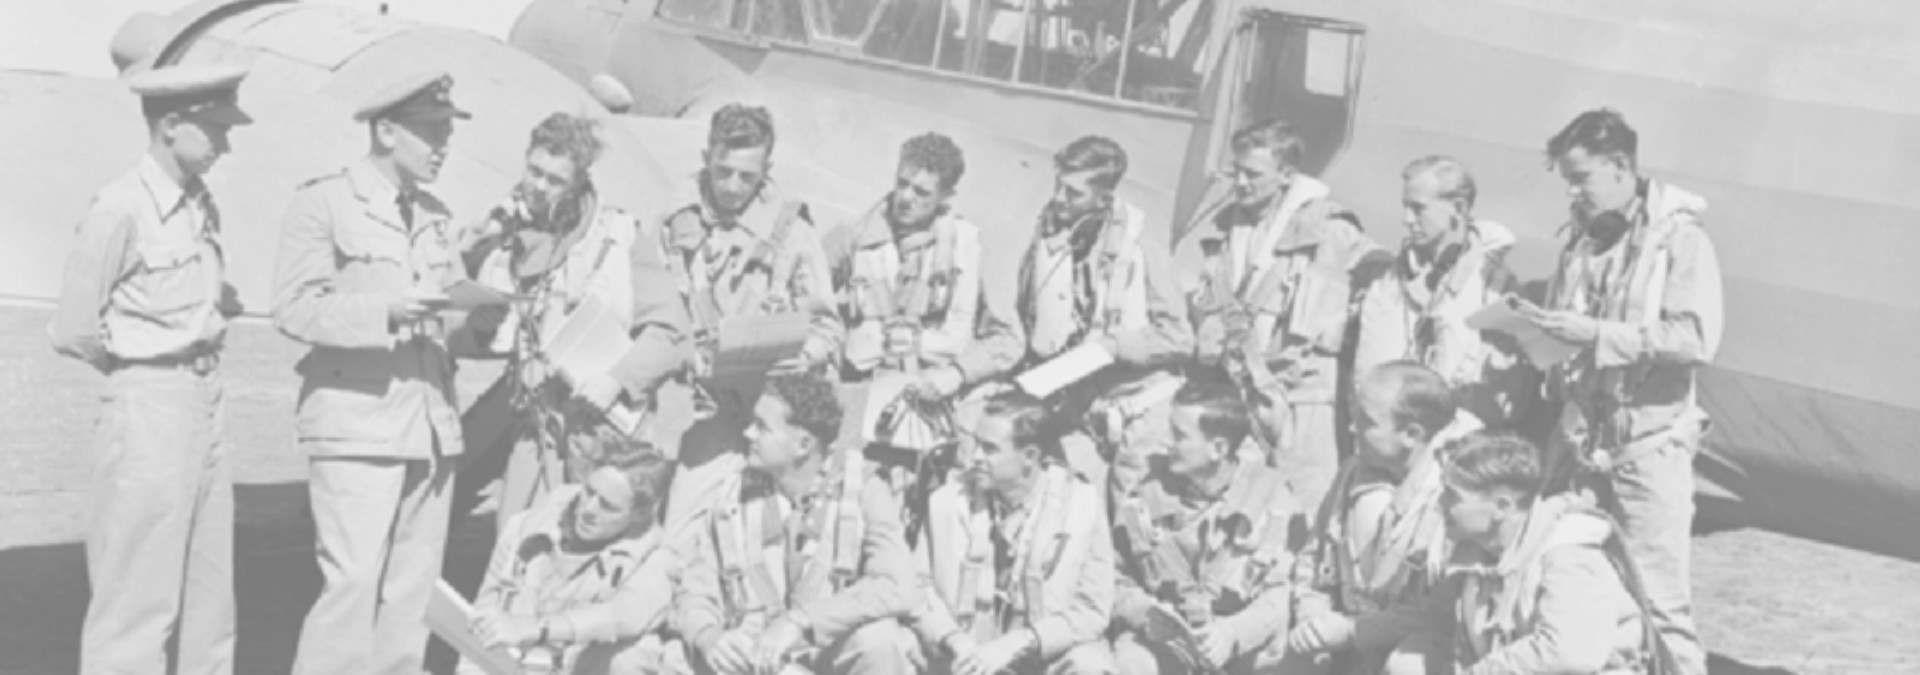 No. 1 Wireless Air Gunners School Ballarat<br>1940 -1945